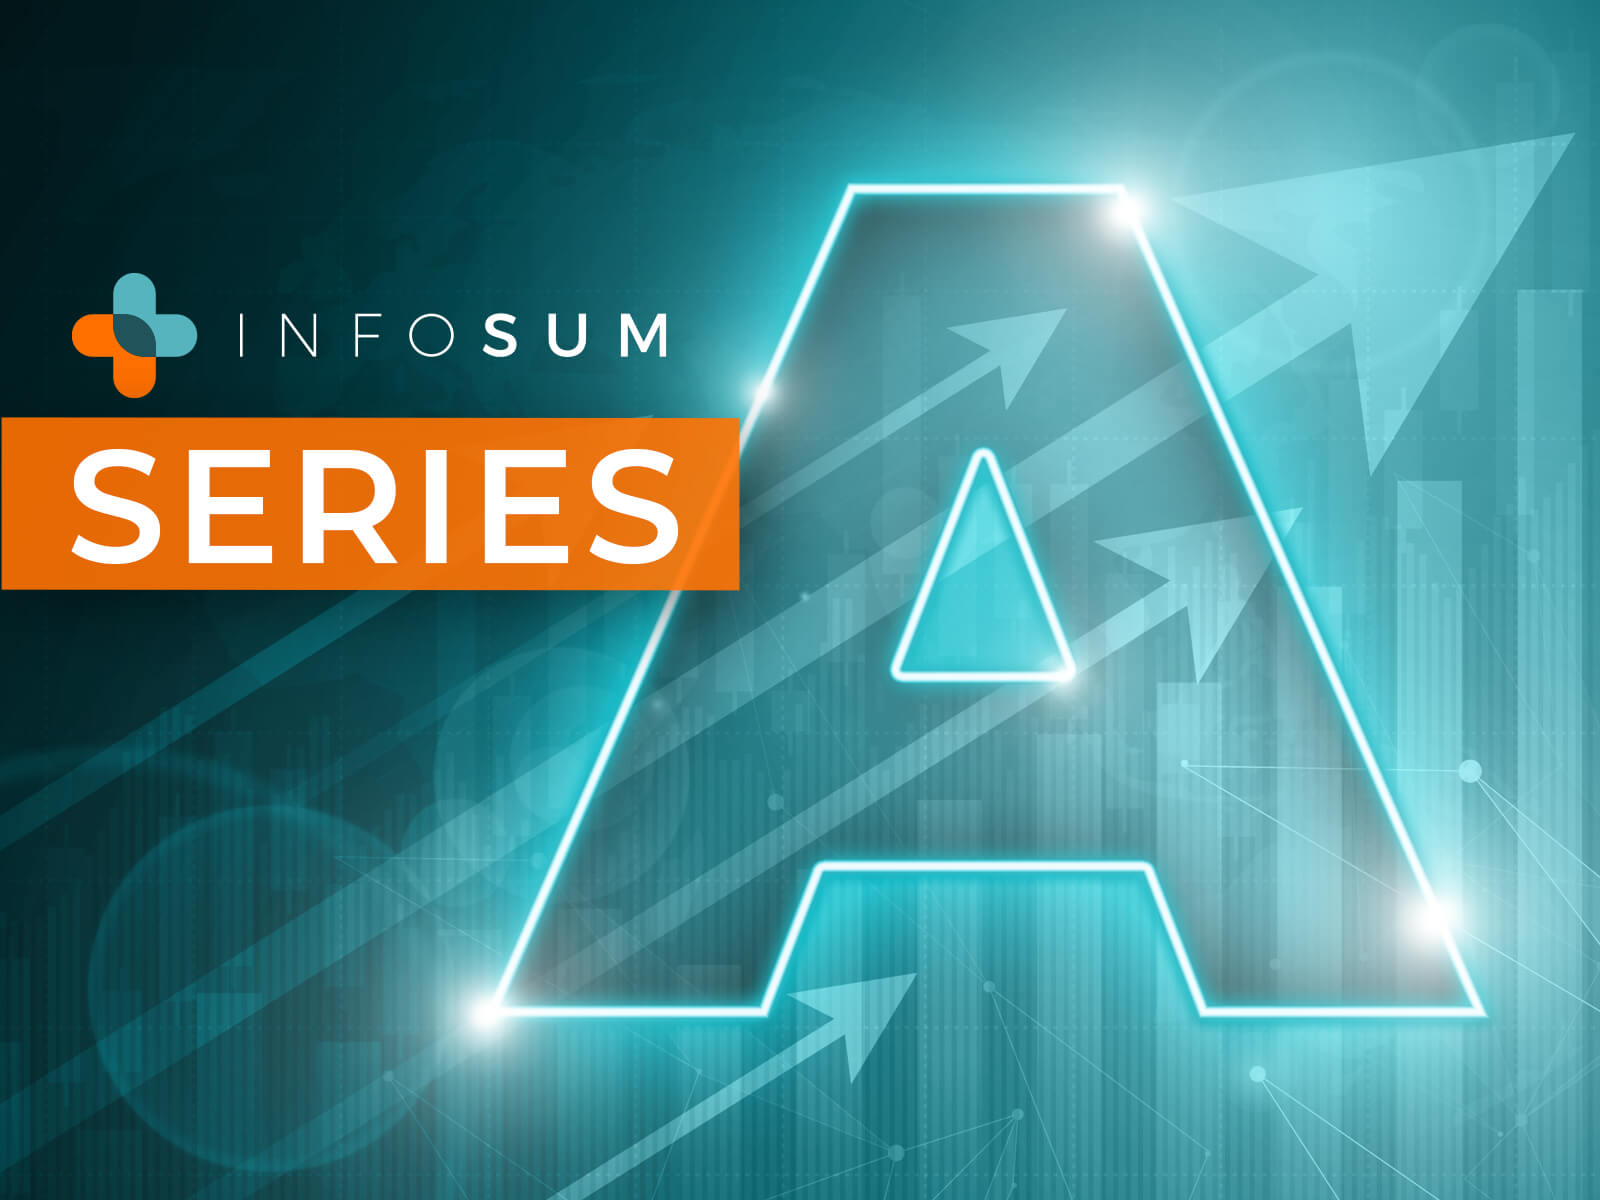 InfoSum raises $15.1 million in Series A funding